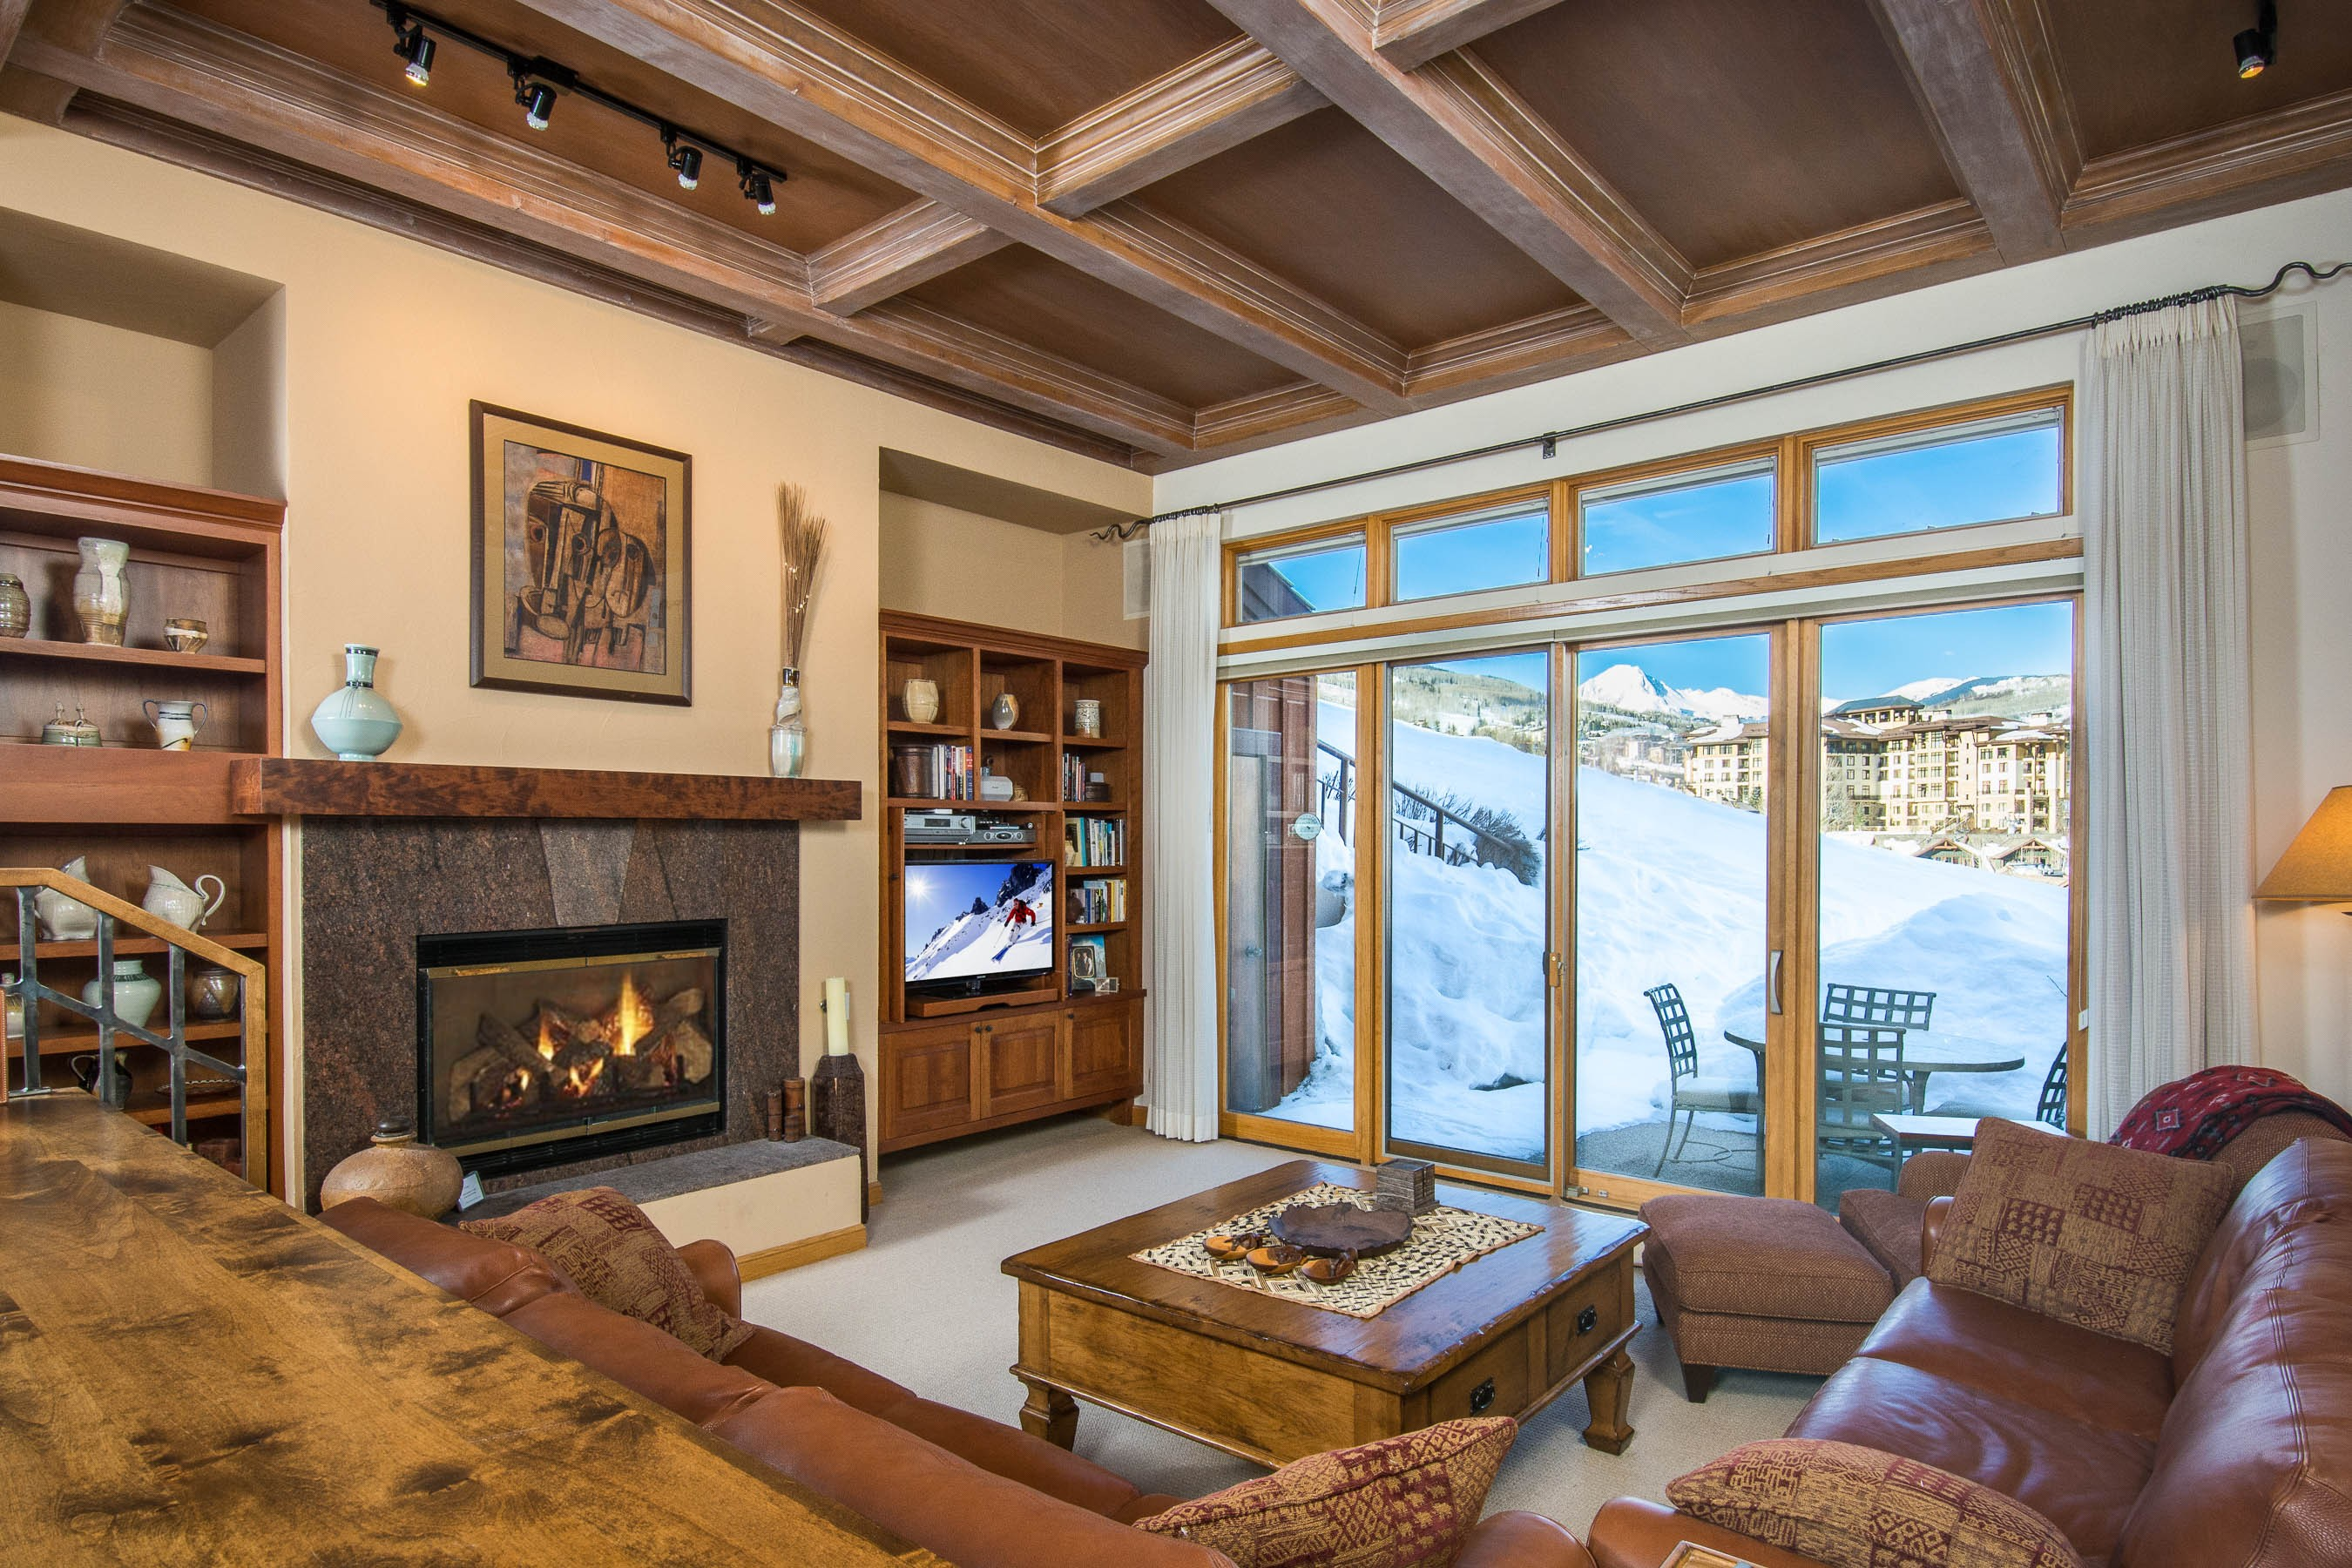 Condomínio para Venda às Spacious 3 Bedroom Ski Retreat 770 Ridge Road Unit 5 Snowmass Village, Colorado, 81615 Estados Unidos